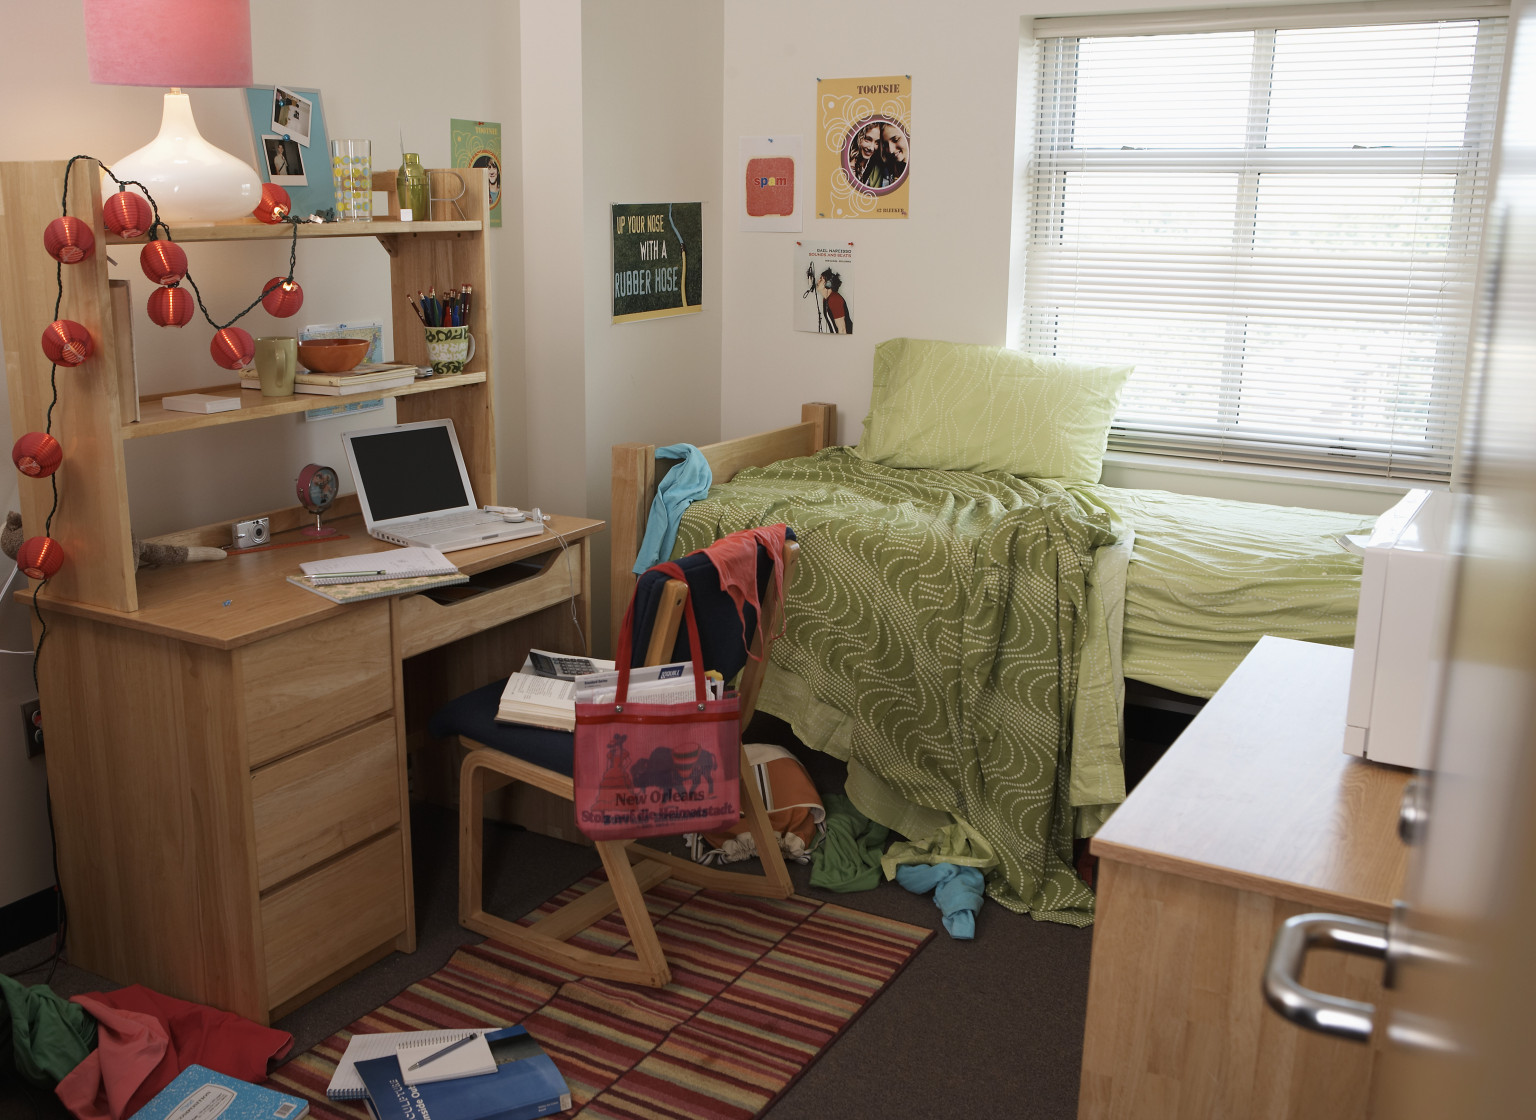 Diy dorm room design huffpost - College living room decorating ideas for students ...